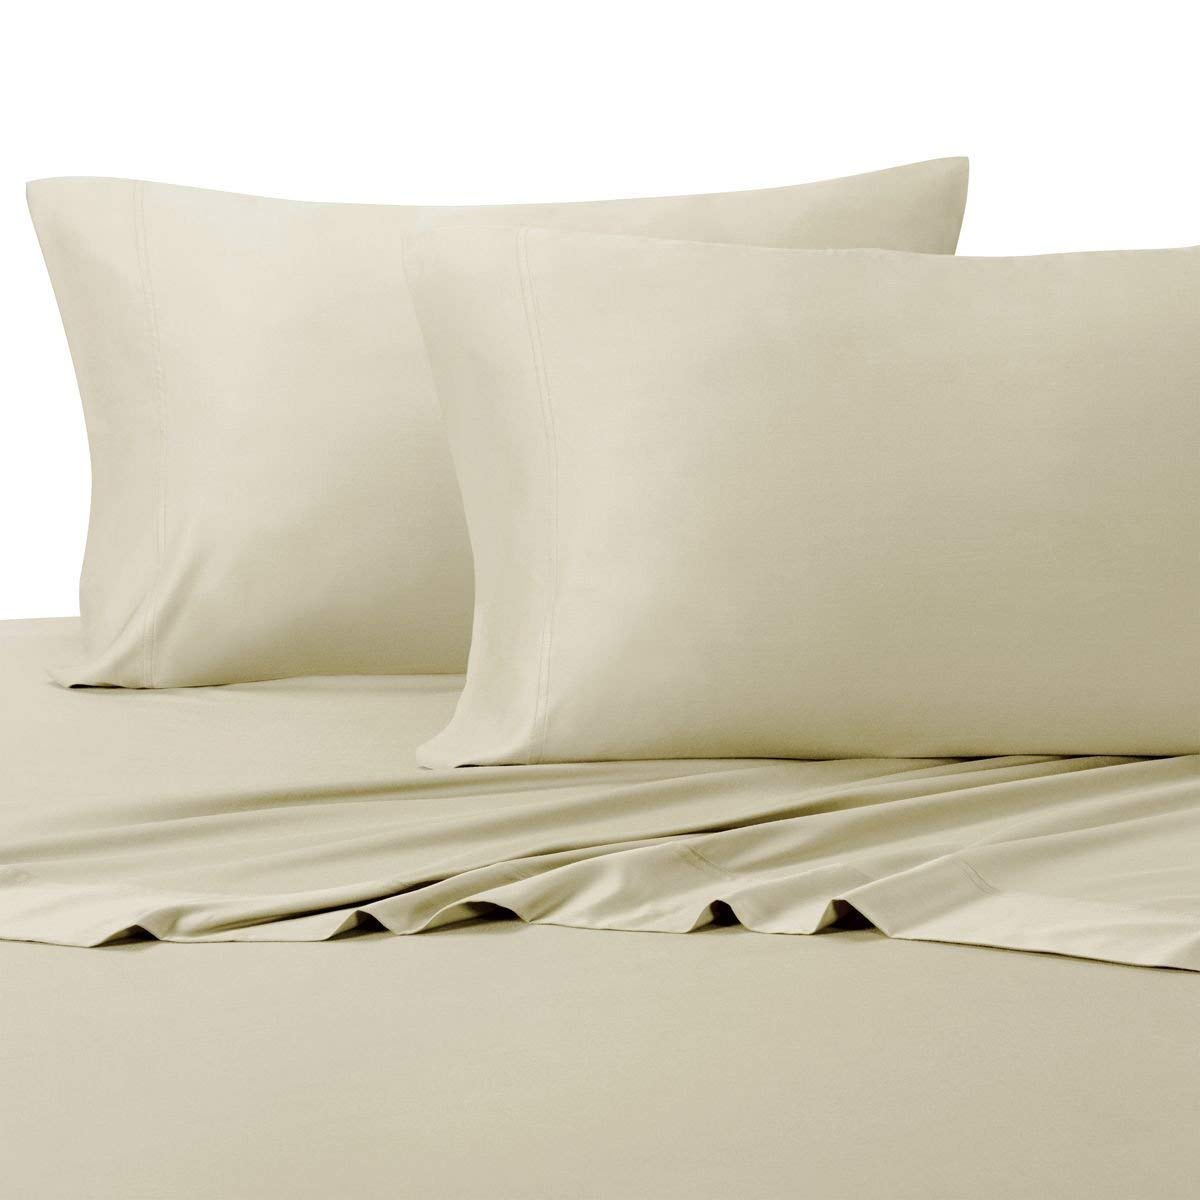 Simply Linens Silky Soft Bamboo Cotton Sheet Set, 100% Bamboo-Cotton Bed Sheets Twin XL, Sand